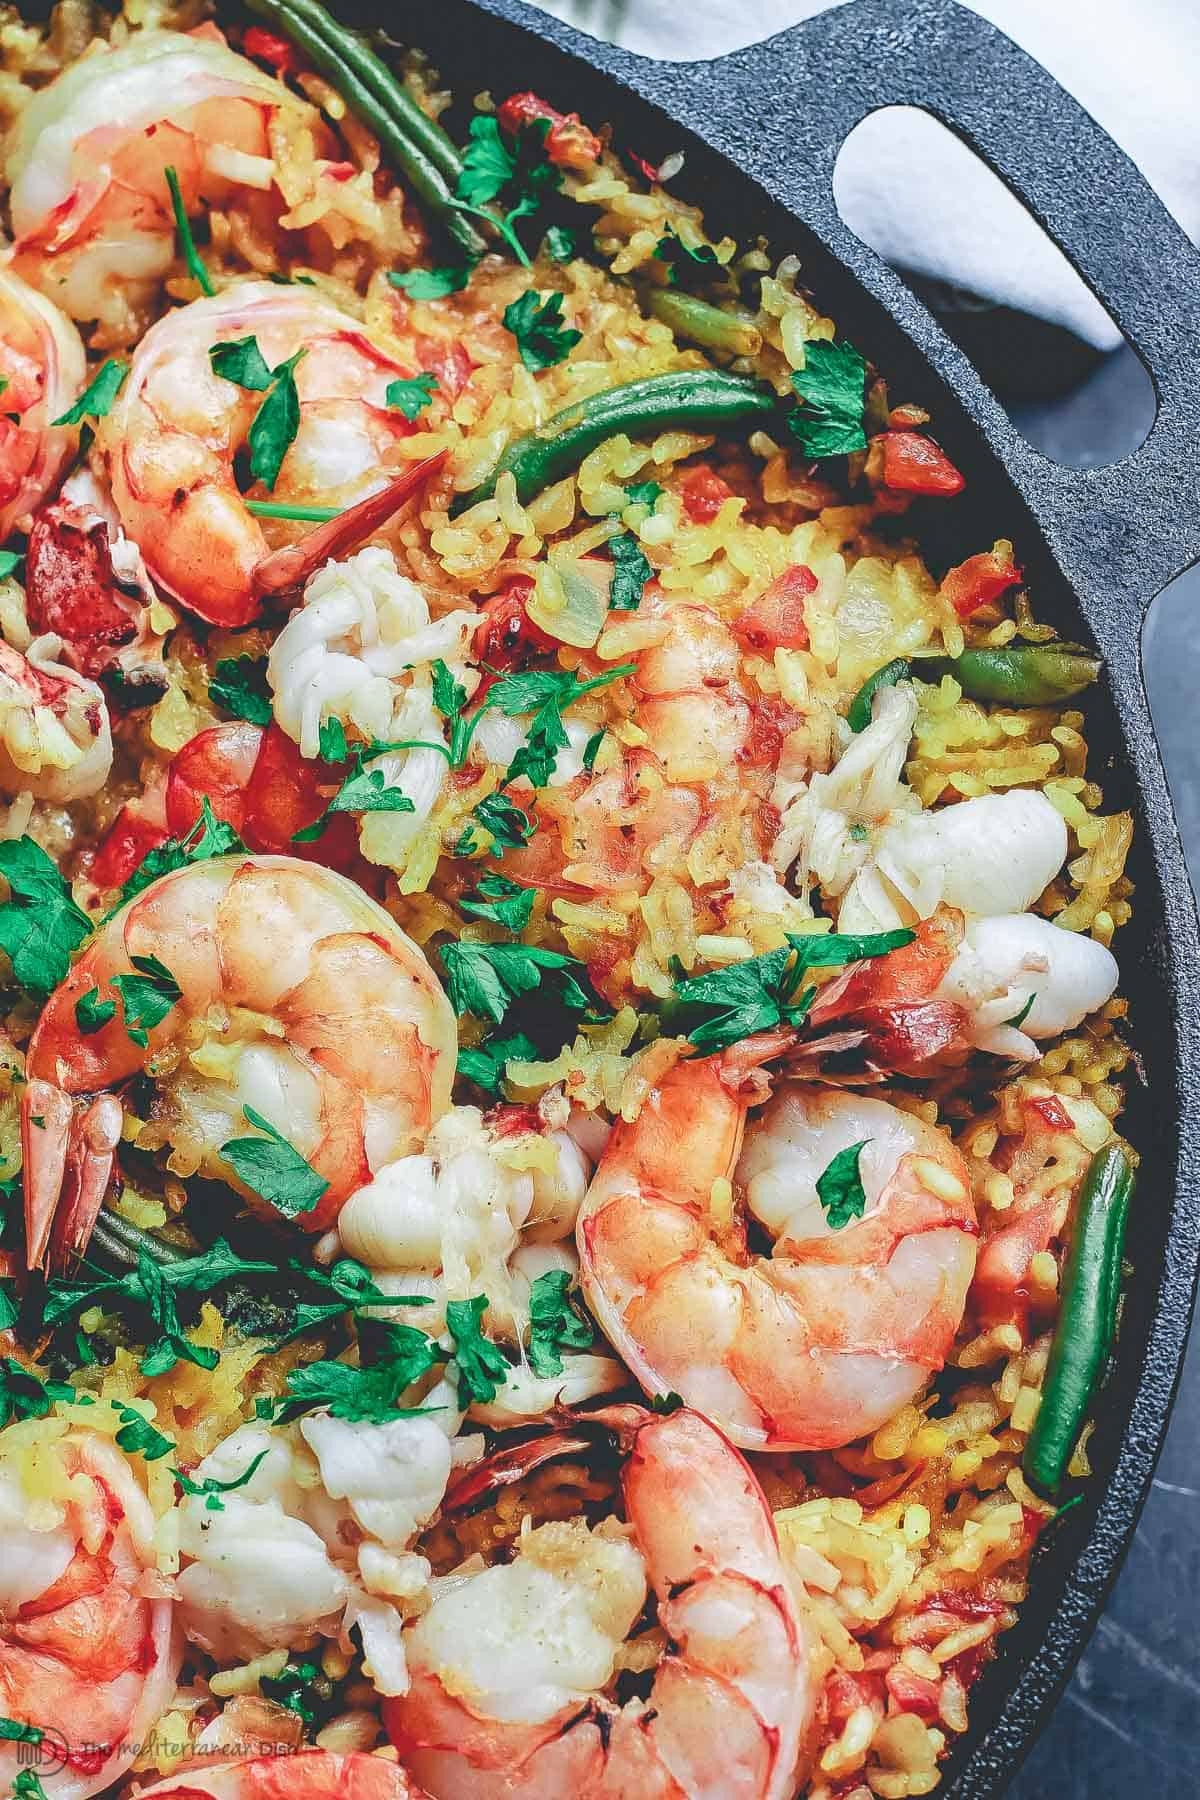 Seafood paella recipes